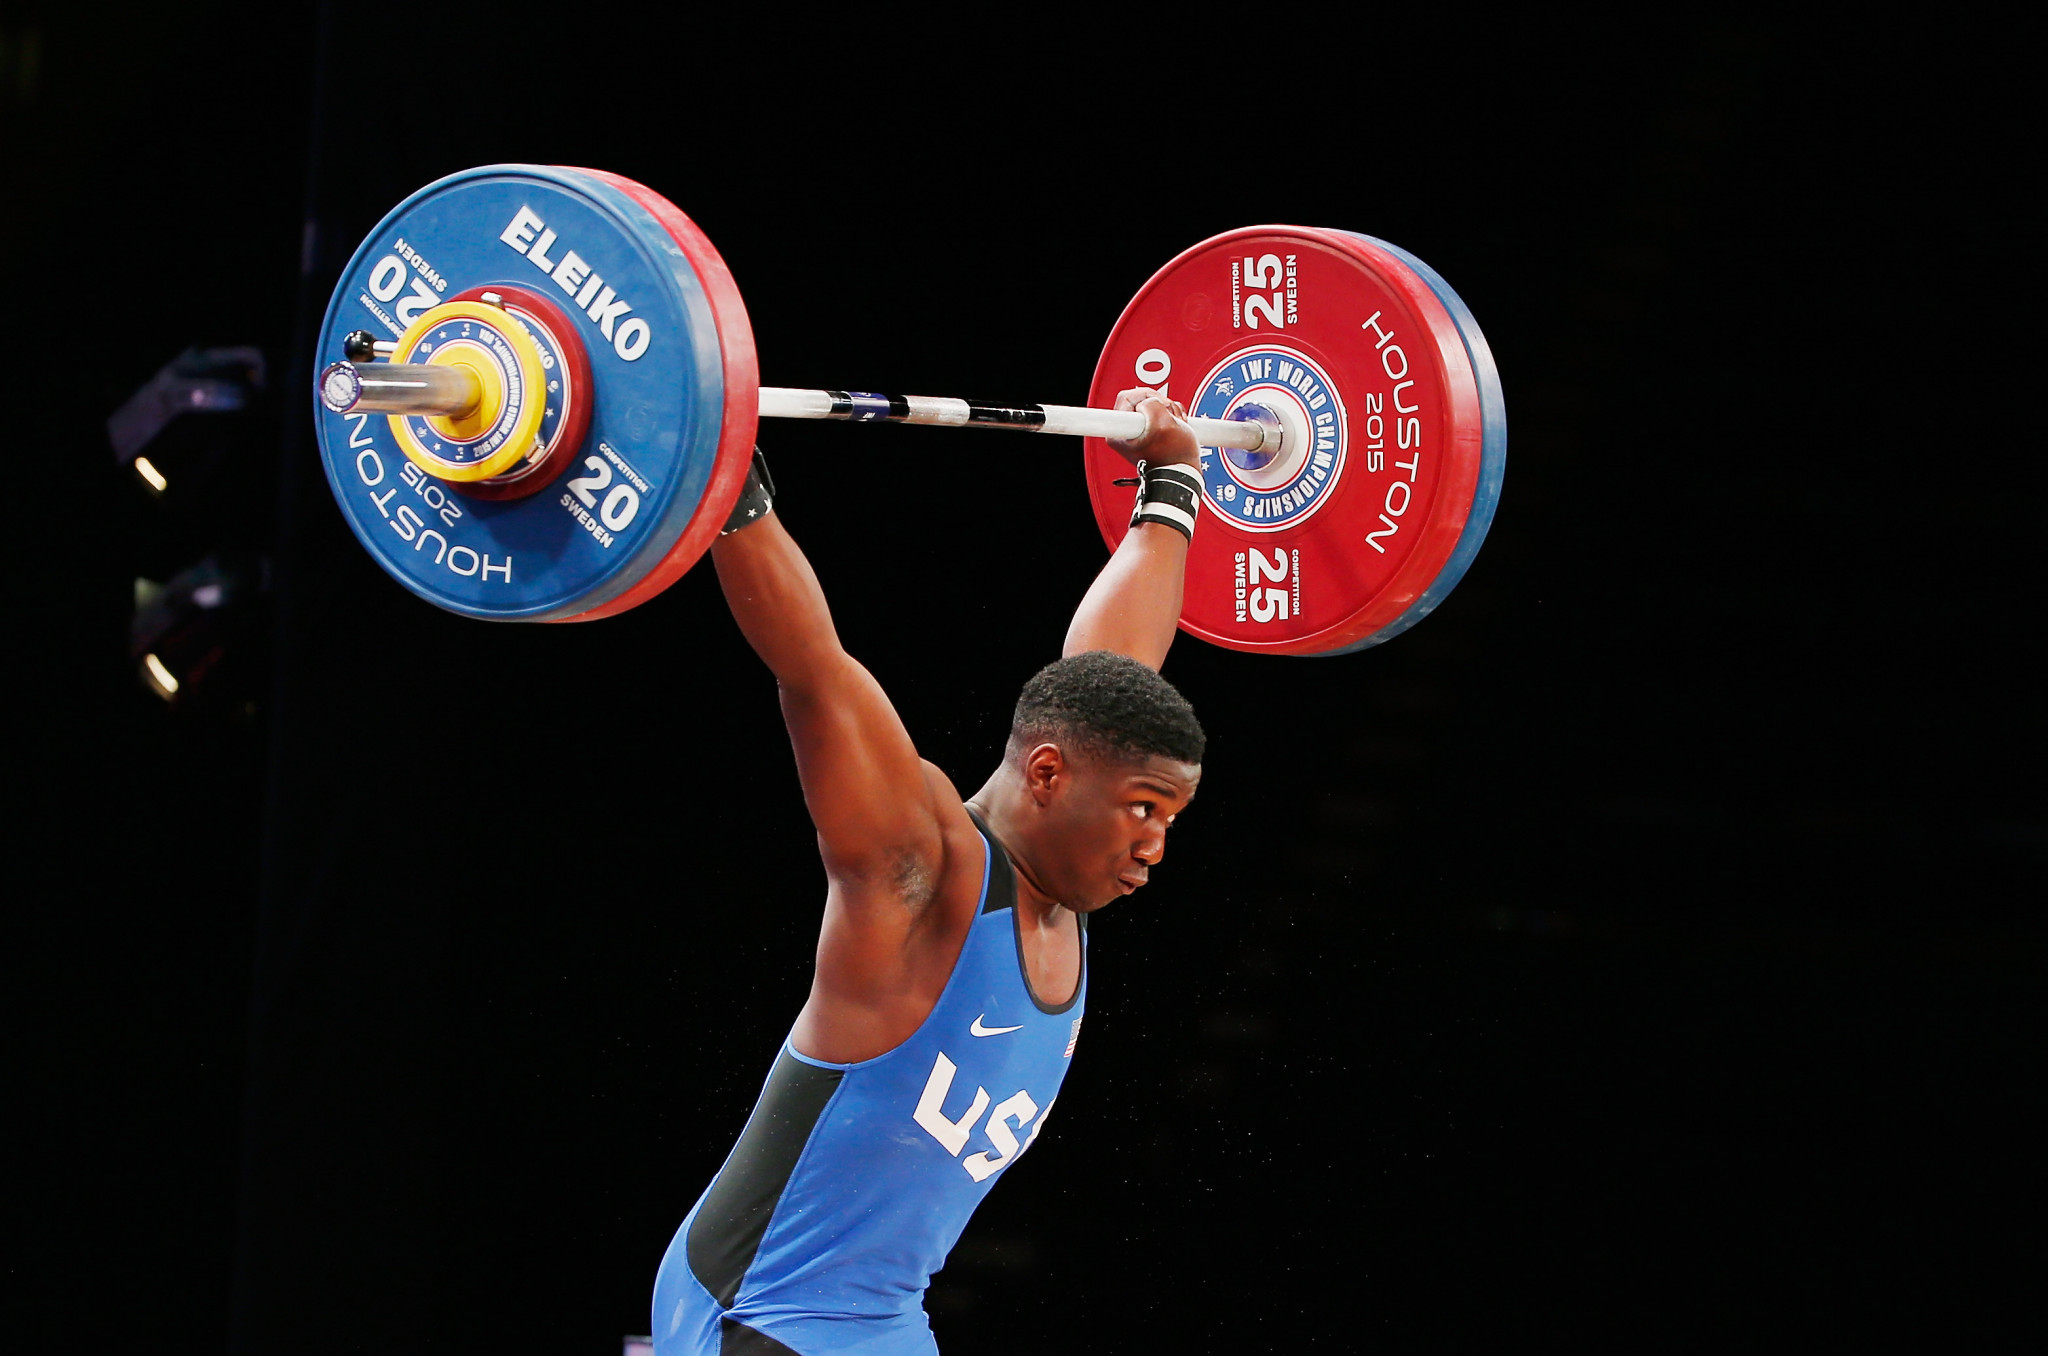 USADA and the IWF partnered to provide education at last year's World Weightlifting Championships ©Getty Images